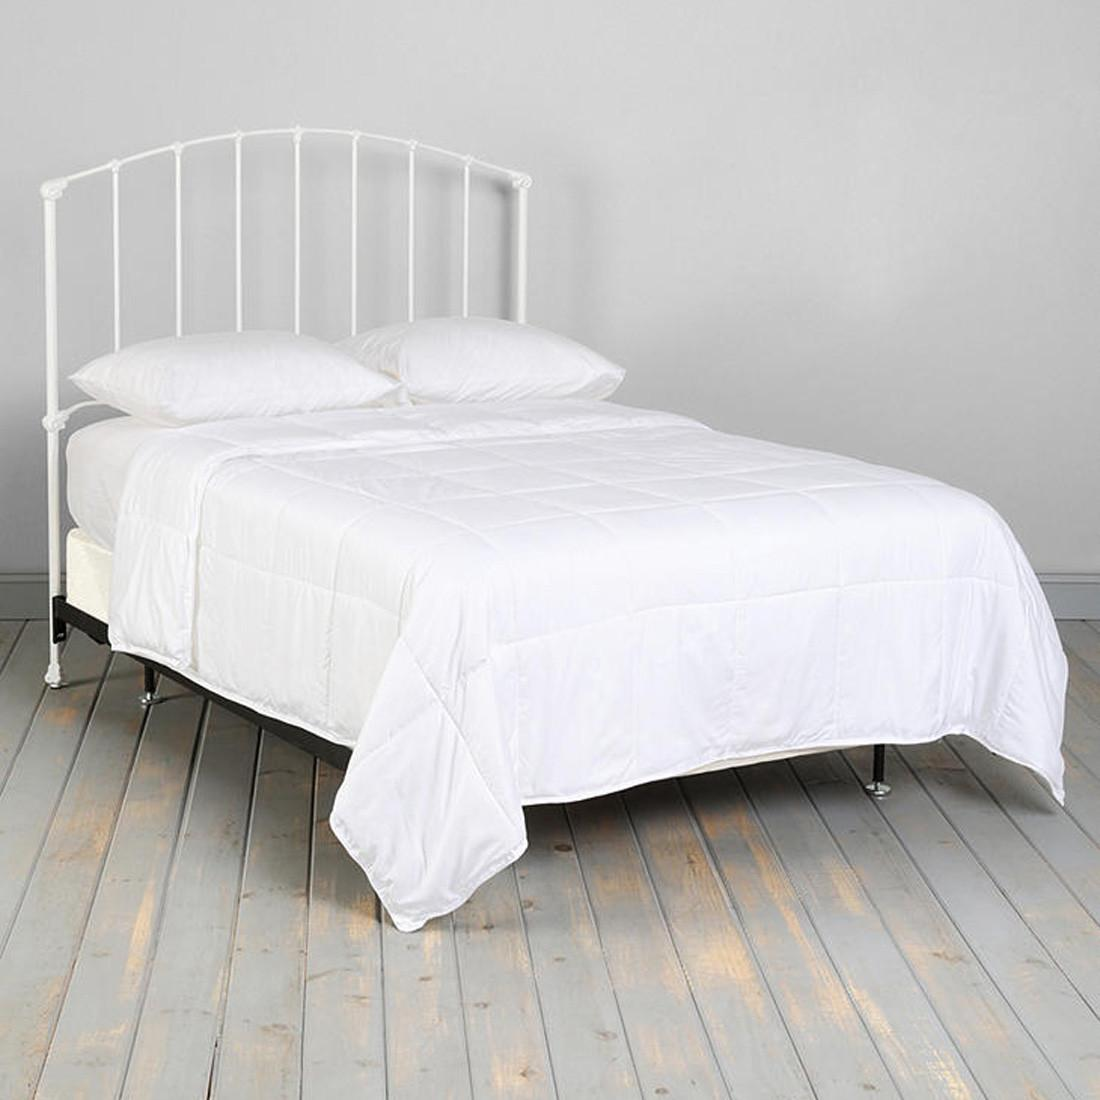 Vintage White Iron Platform Bed Headboard